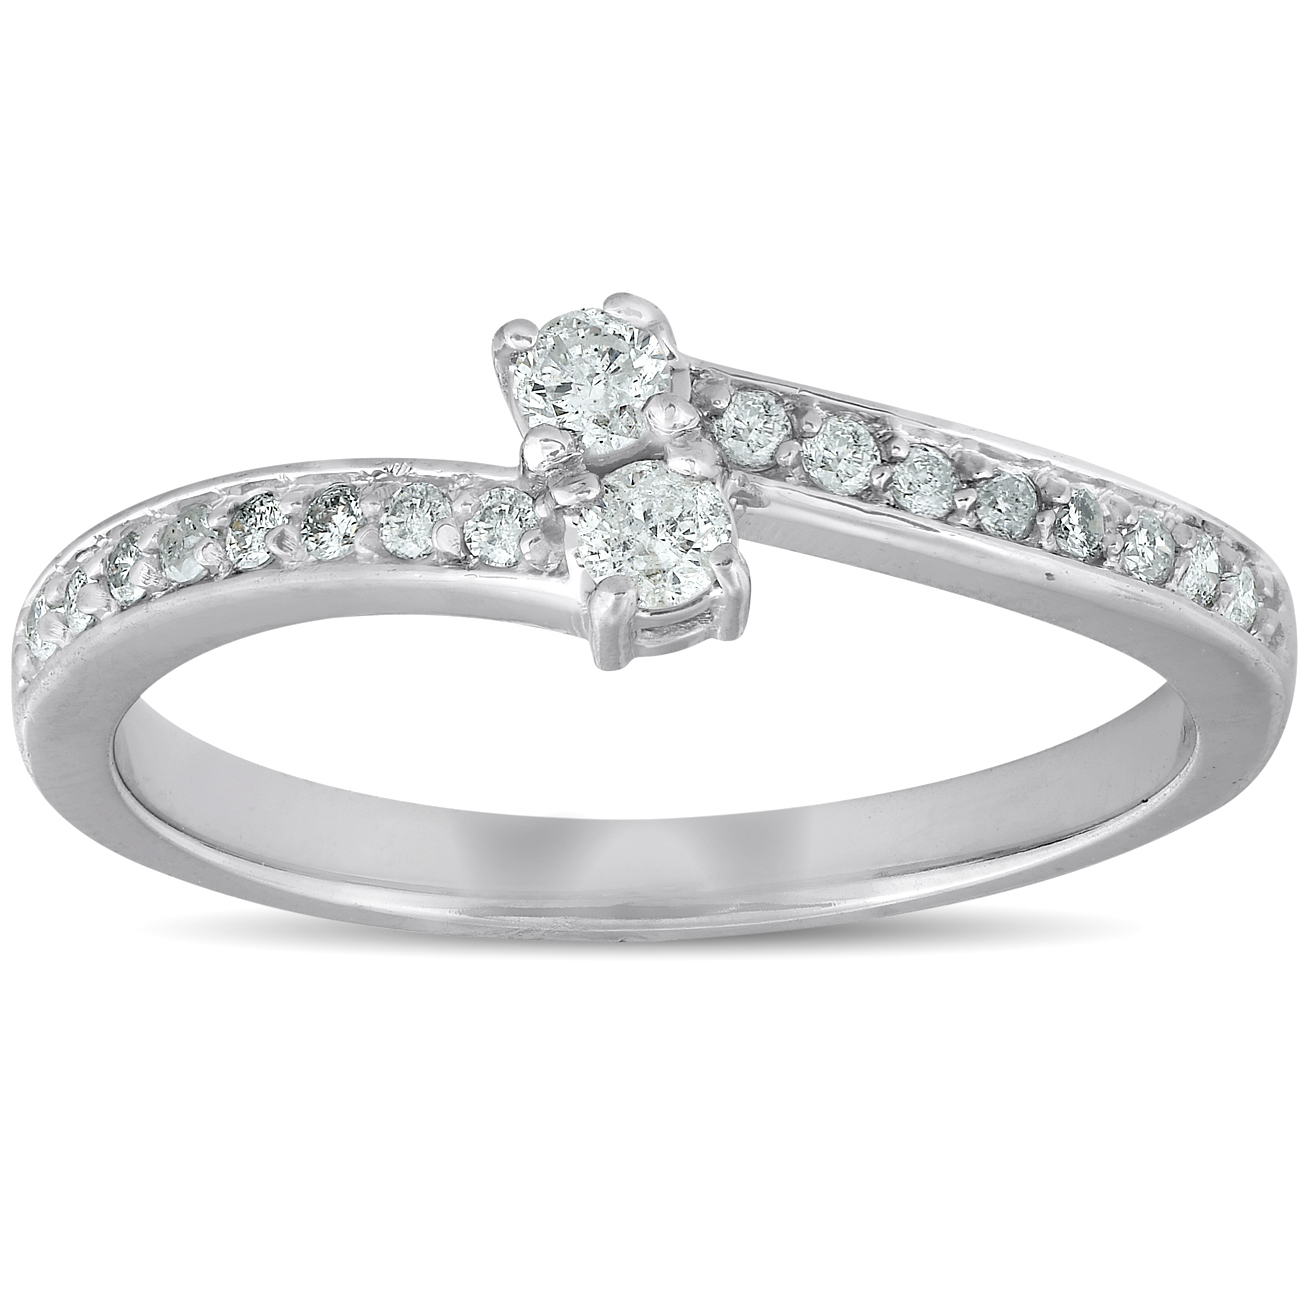 1 4 ct two stone diamond engagement forever us ring white. Black Bedroom Furniture Sets. Home Design Ideas